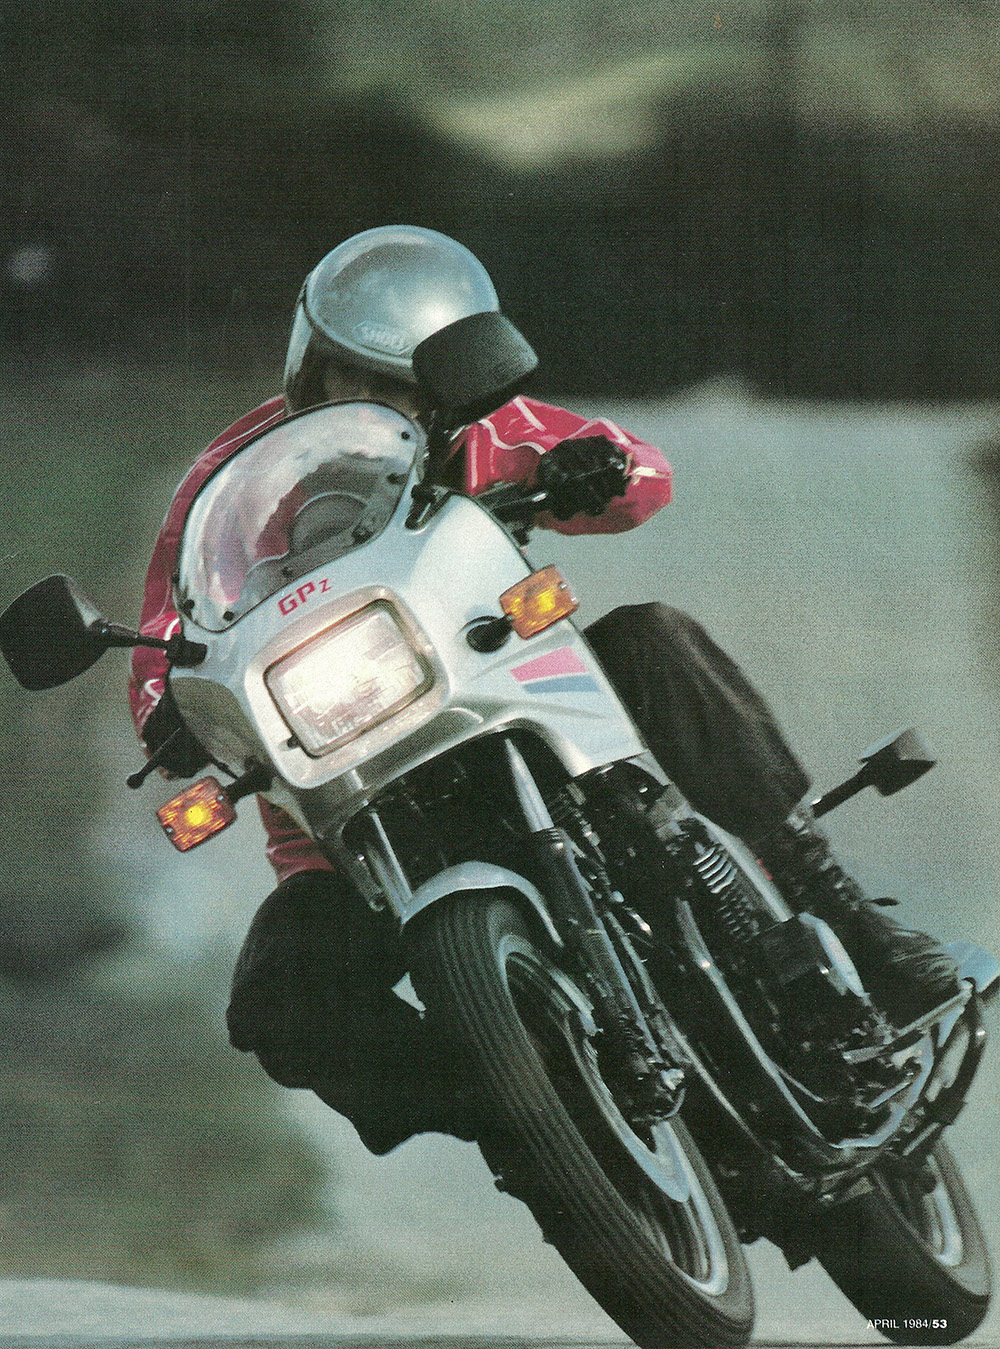 1984 Kawasaki GPz550 road test 02.jpg